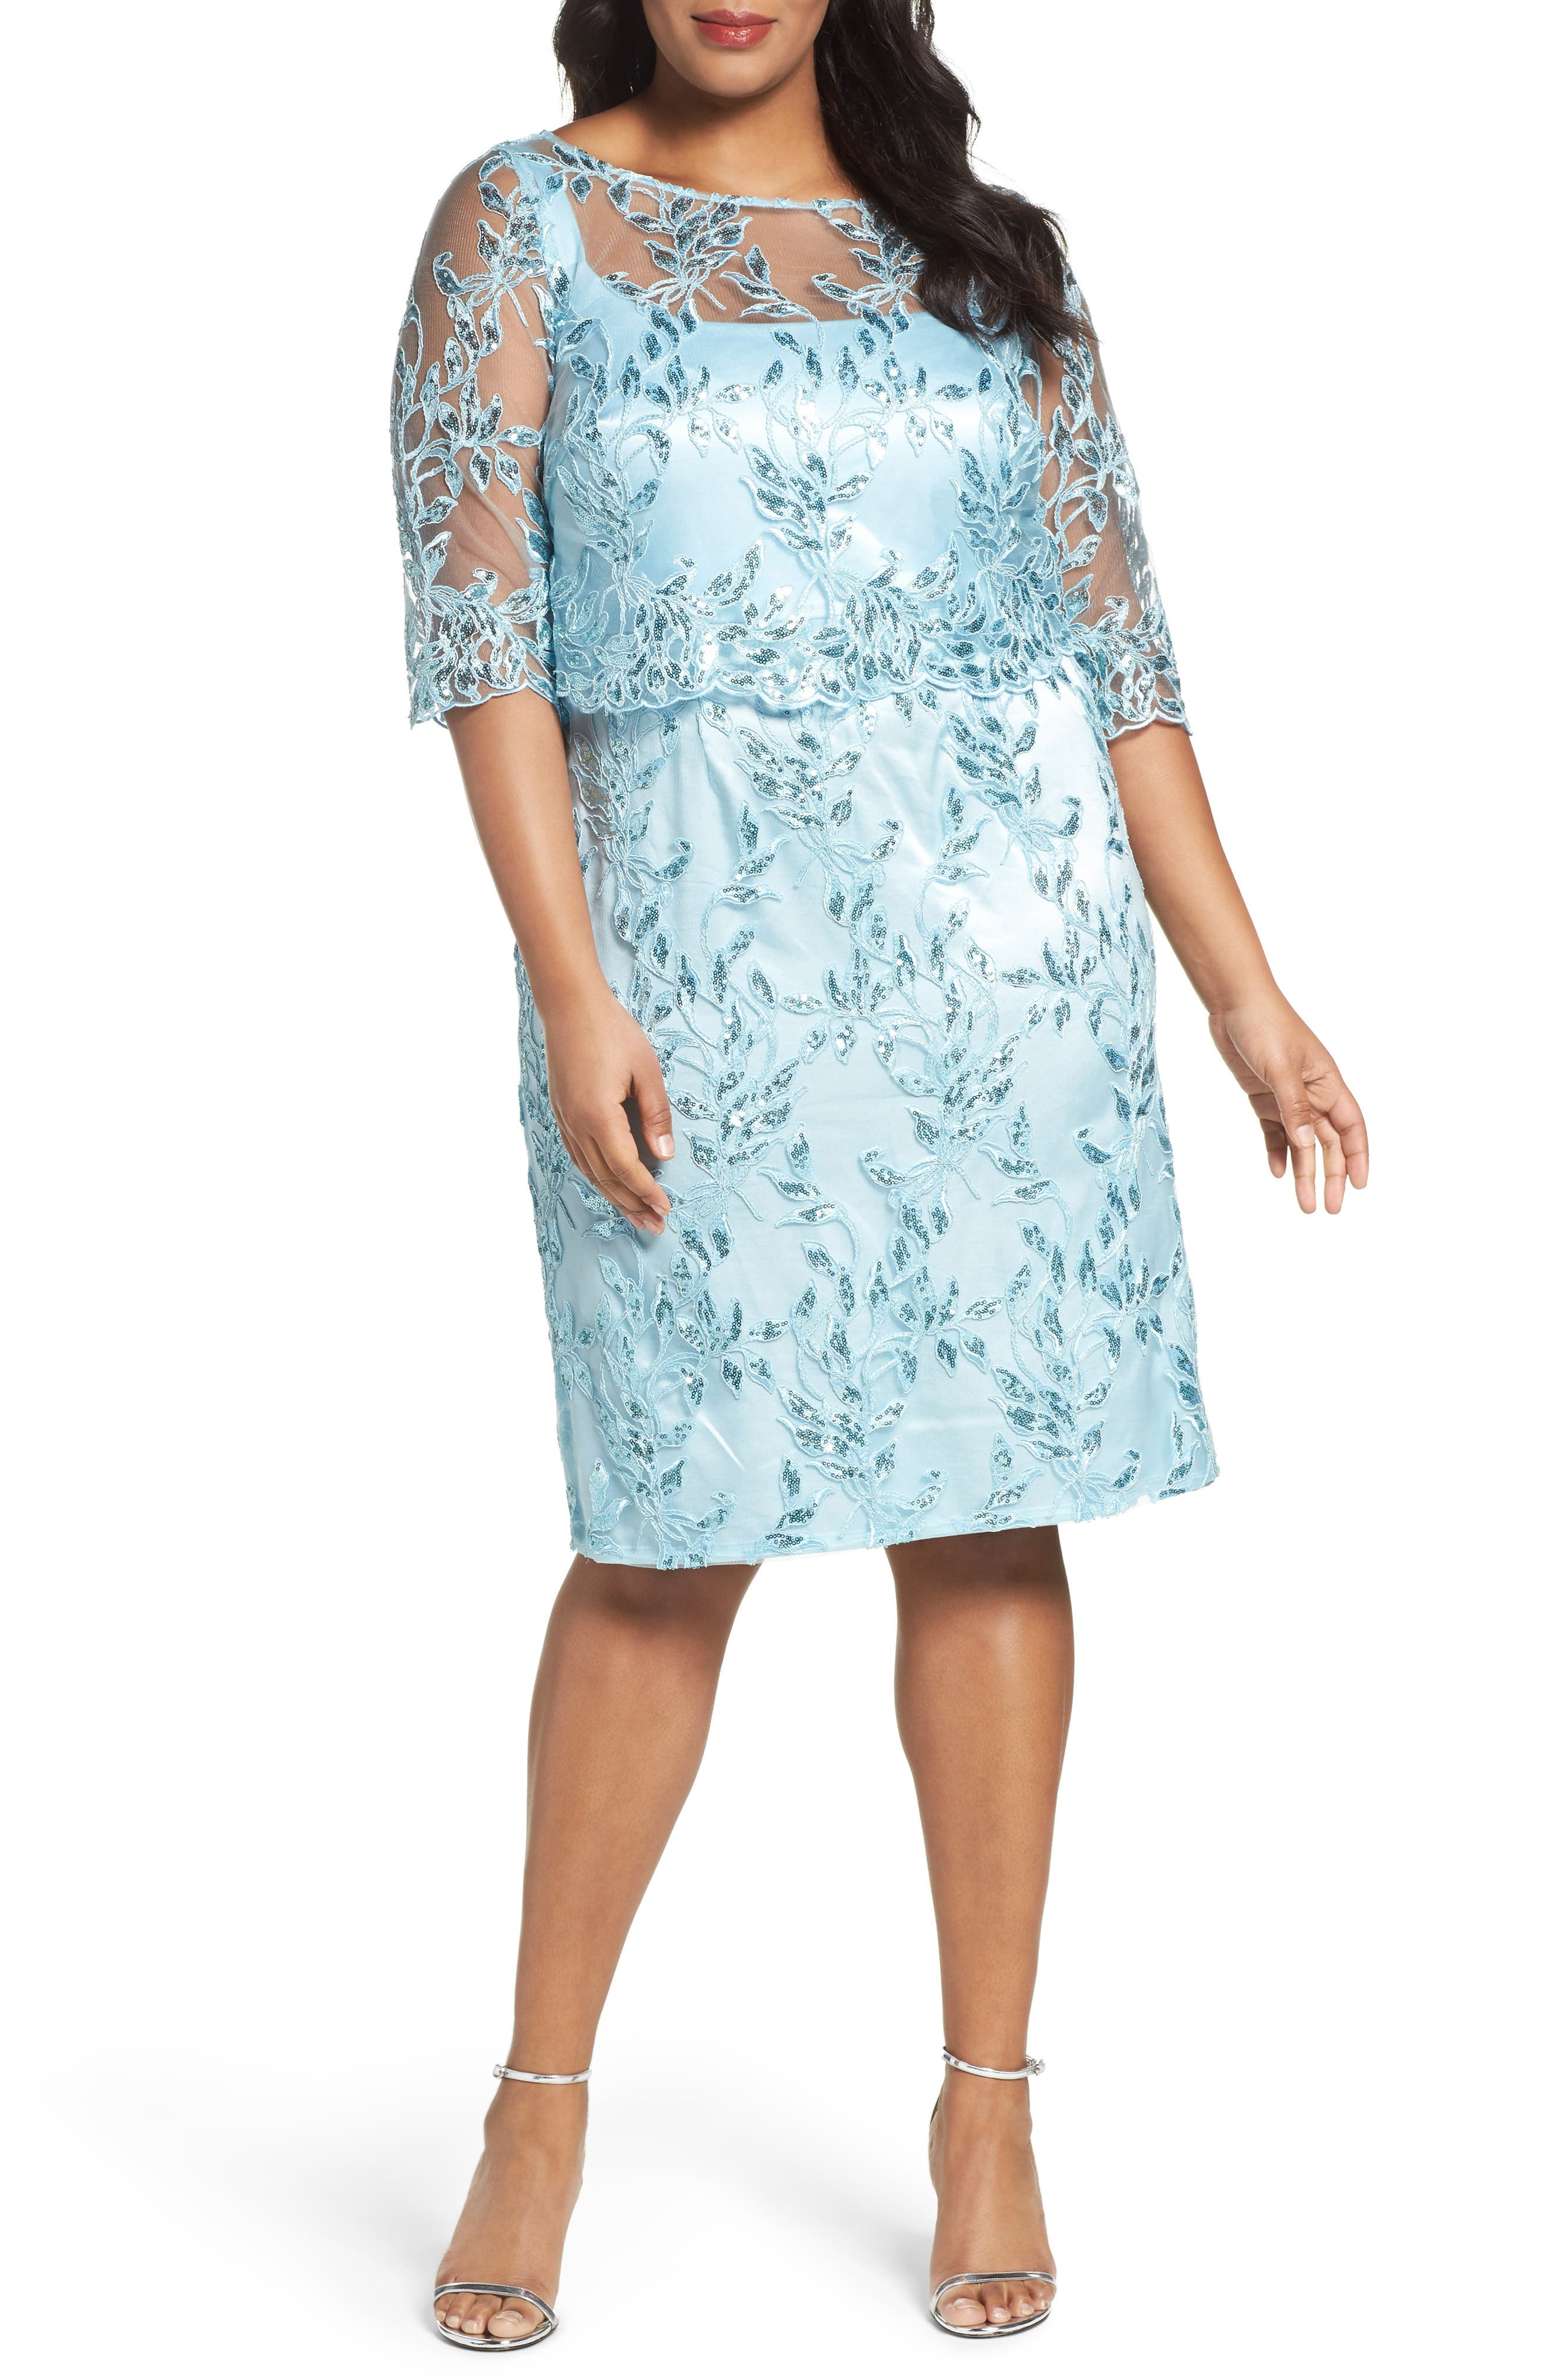 Main Image - Brianna Embellished Embroidered Popover Dress (Plus Size)